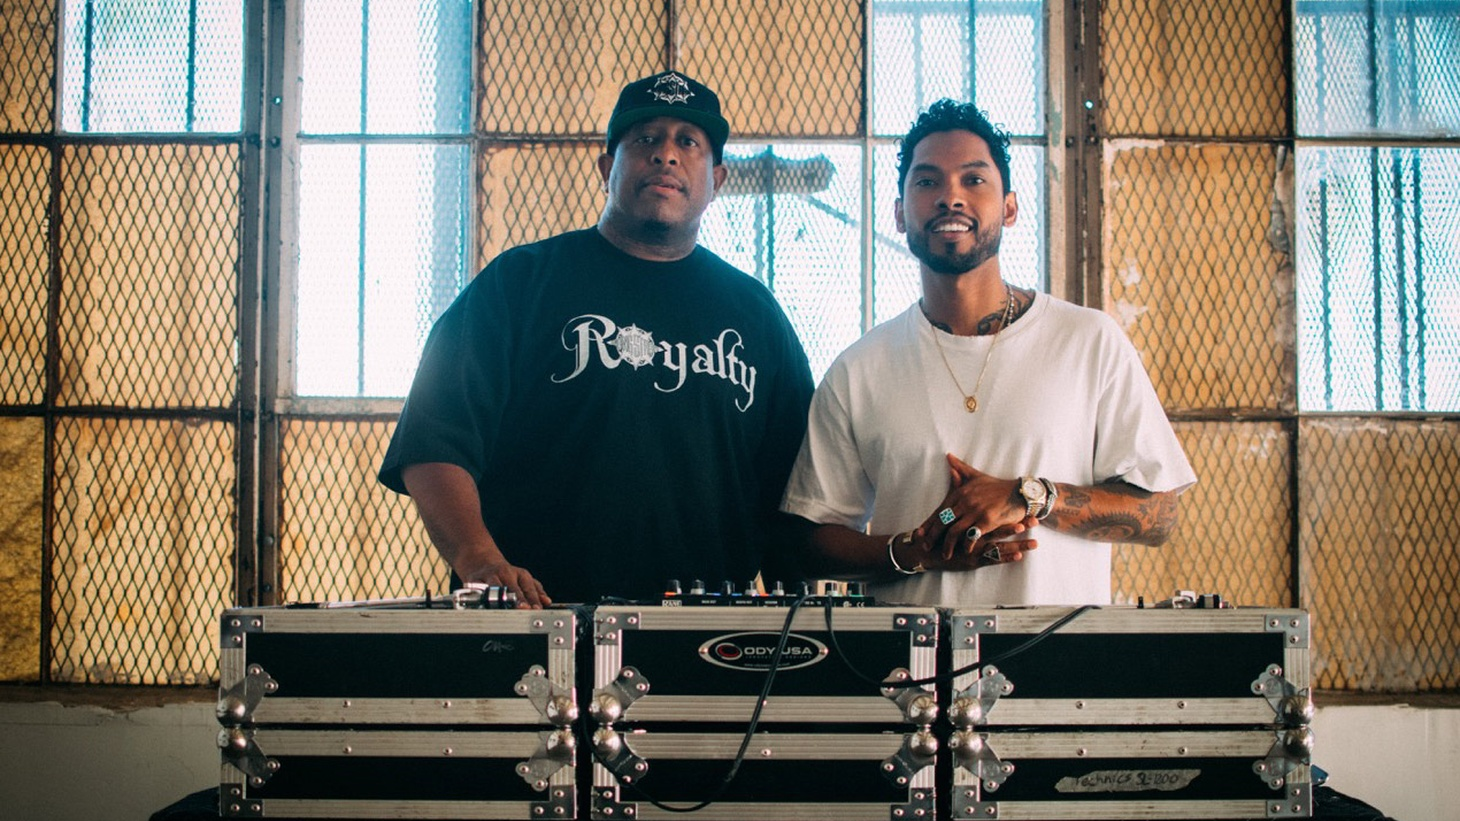 Last year, while recording his two-time Grammy-nominated album Wildheart, Miguel took a little time out for a session with DJ Premier – a meeting lead to a song with great potential.